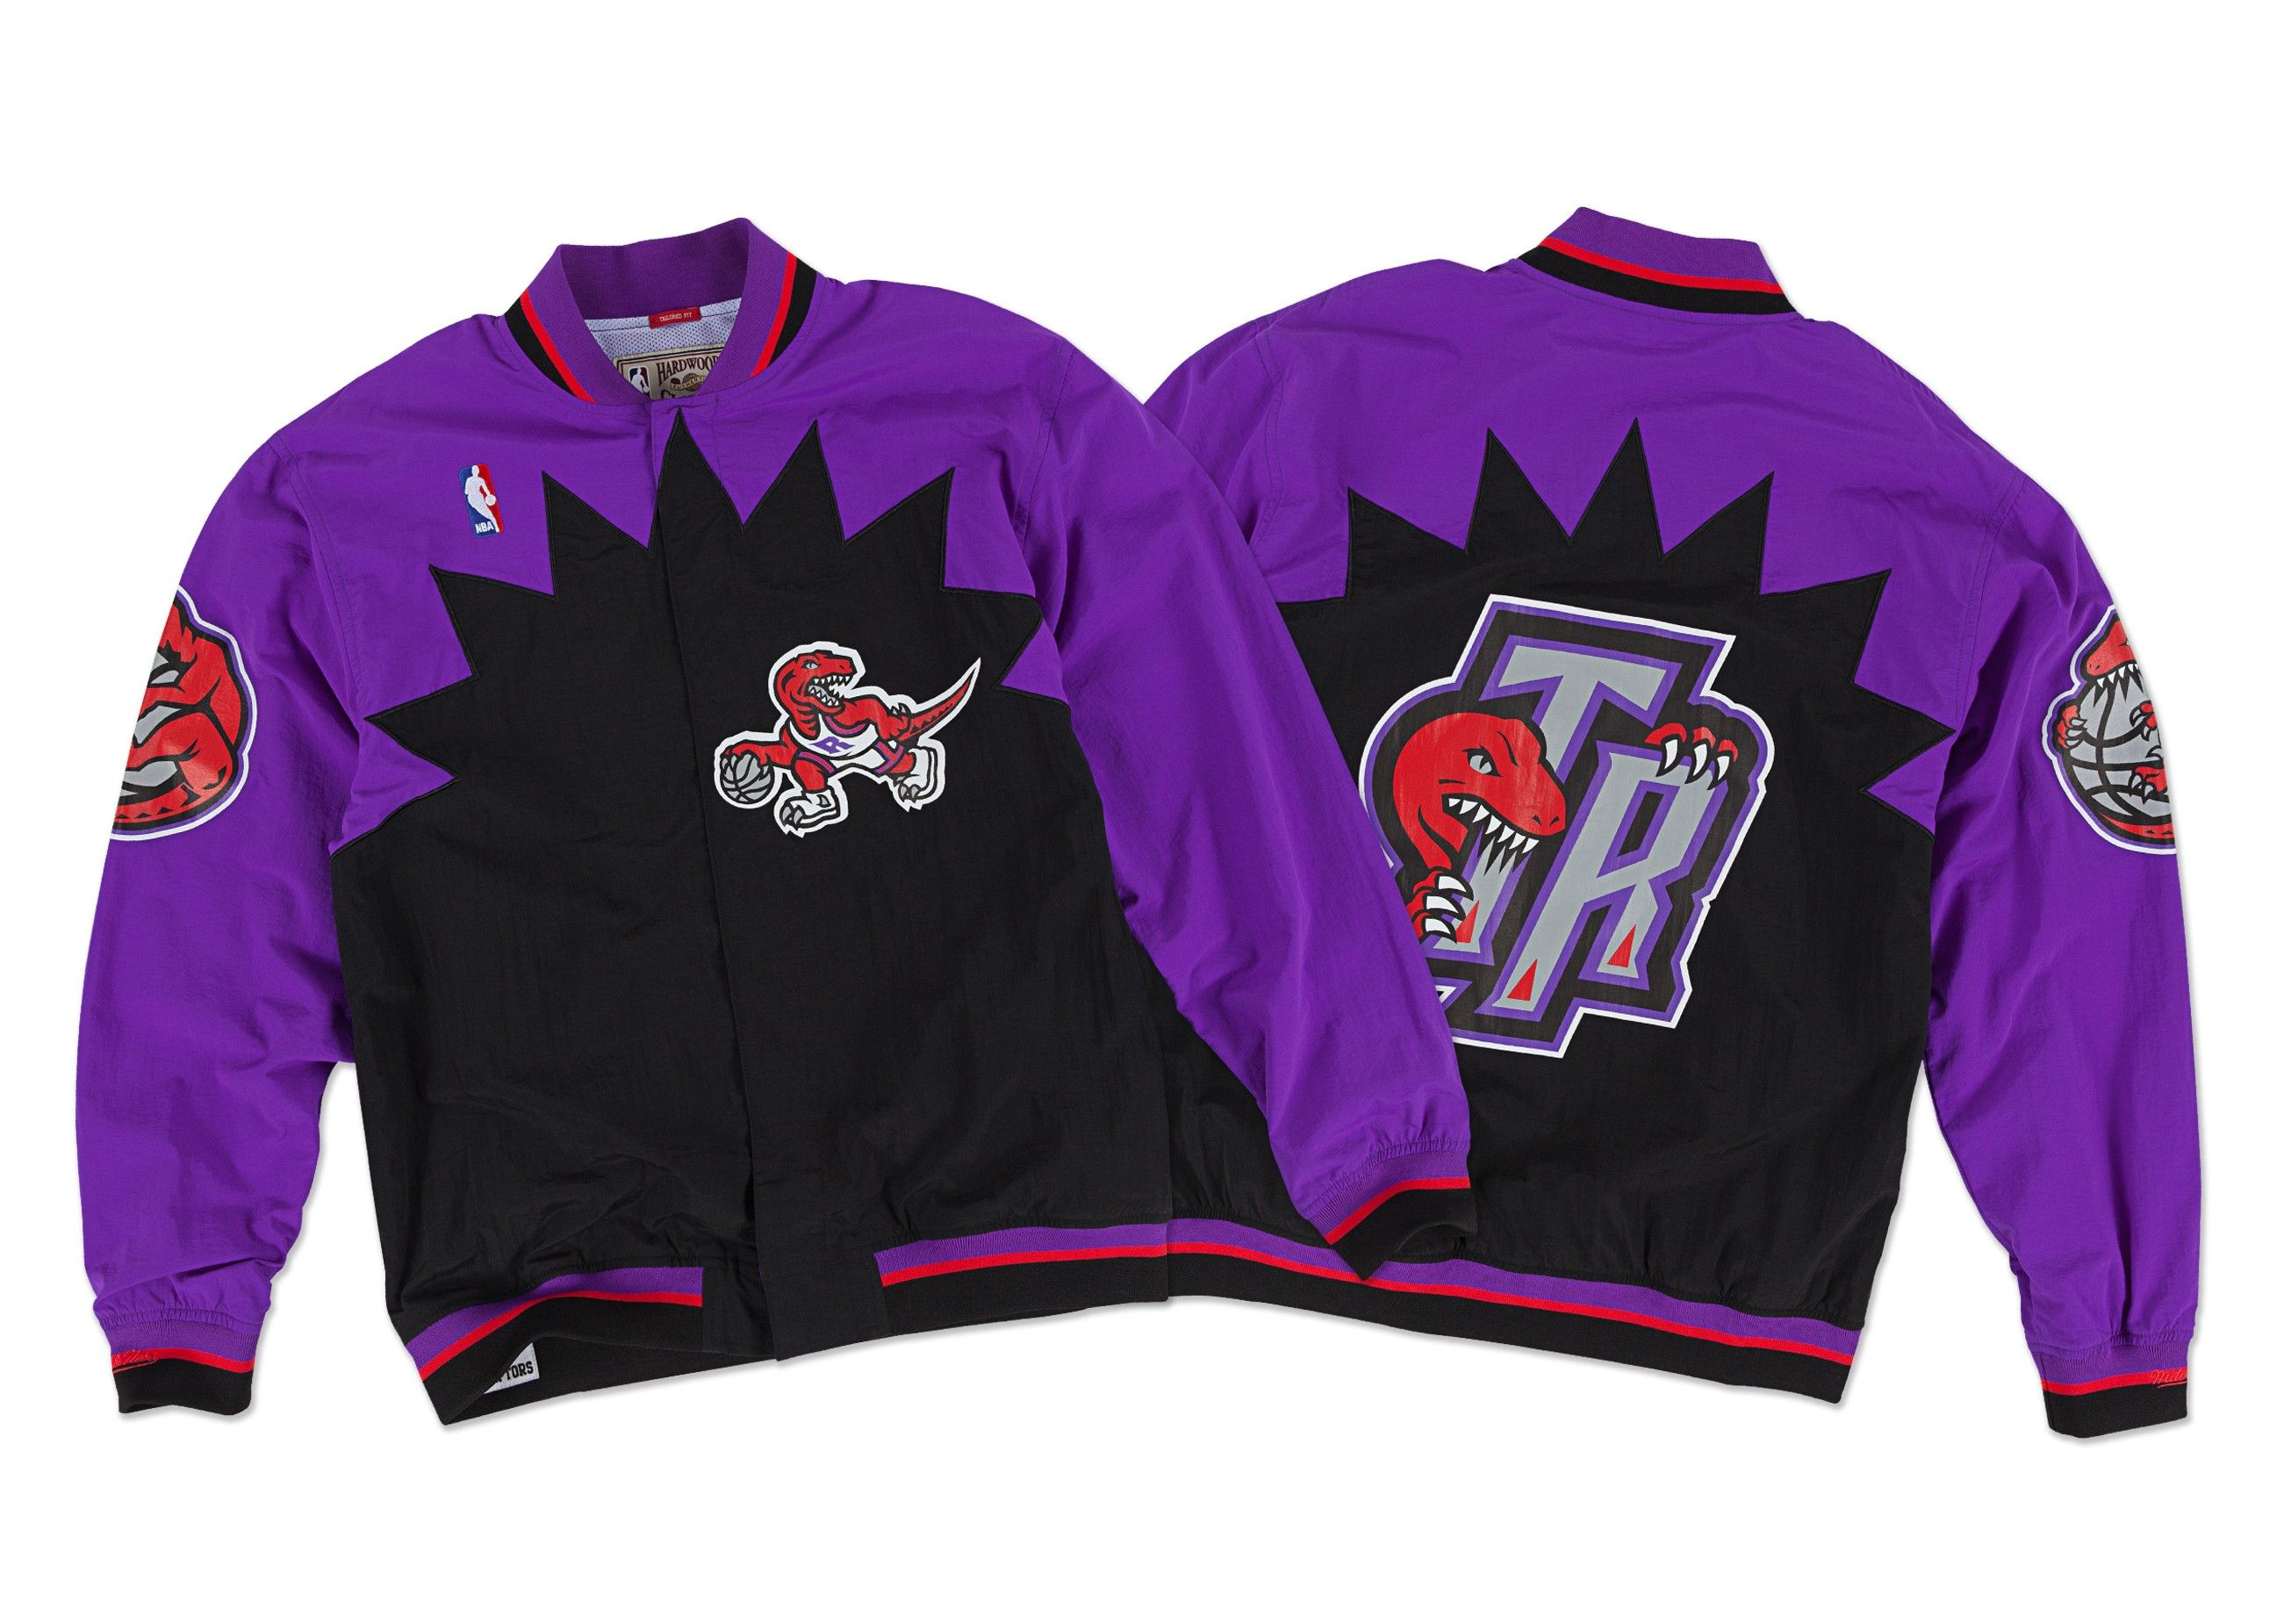 f1dcba15c48 1995-96 Authentic Warm Up Jacket Toronto Raptors - Shop Mitchell   Ness NBA  Outerwear and Jackets